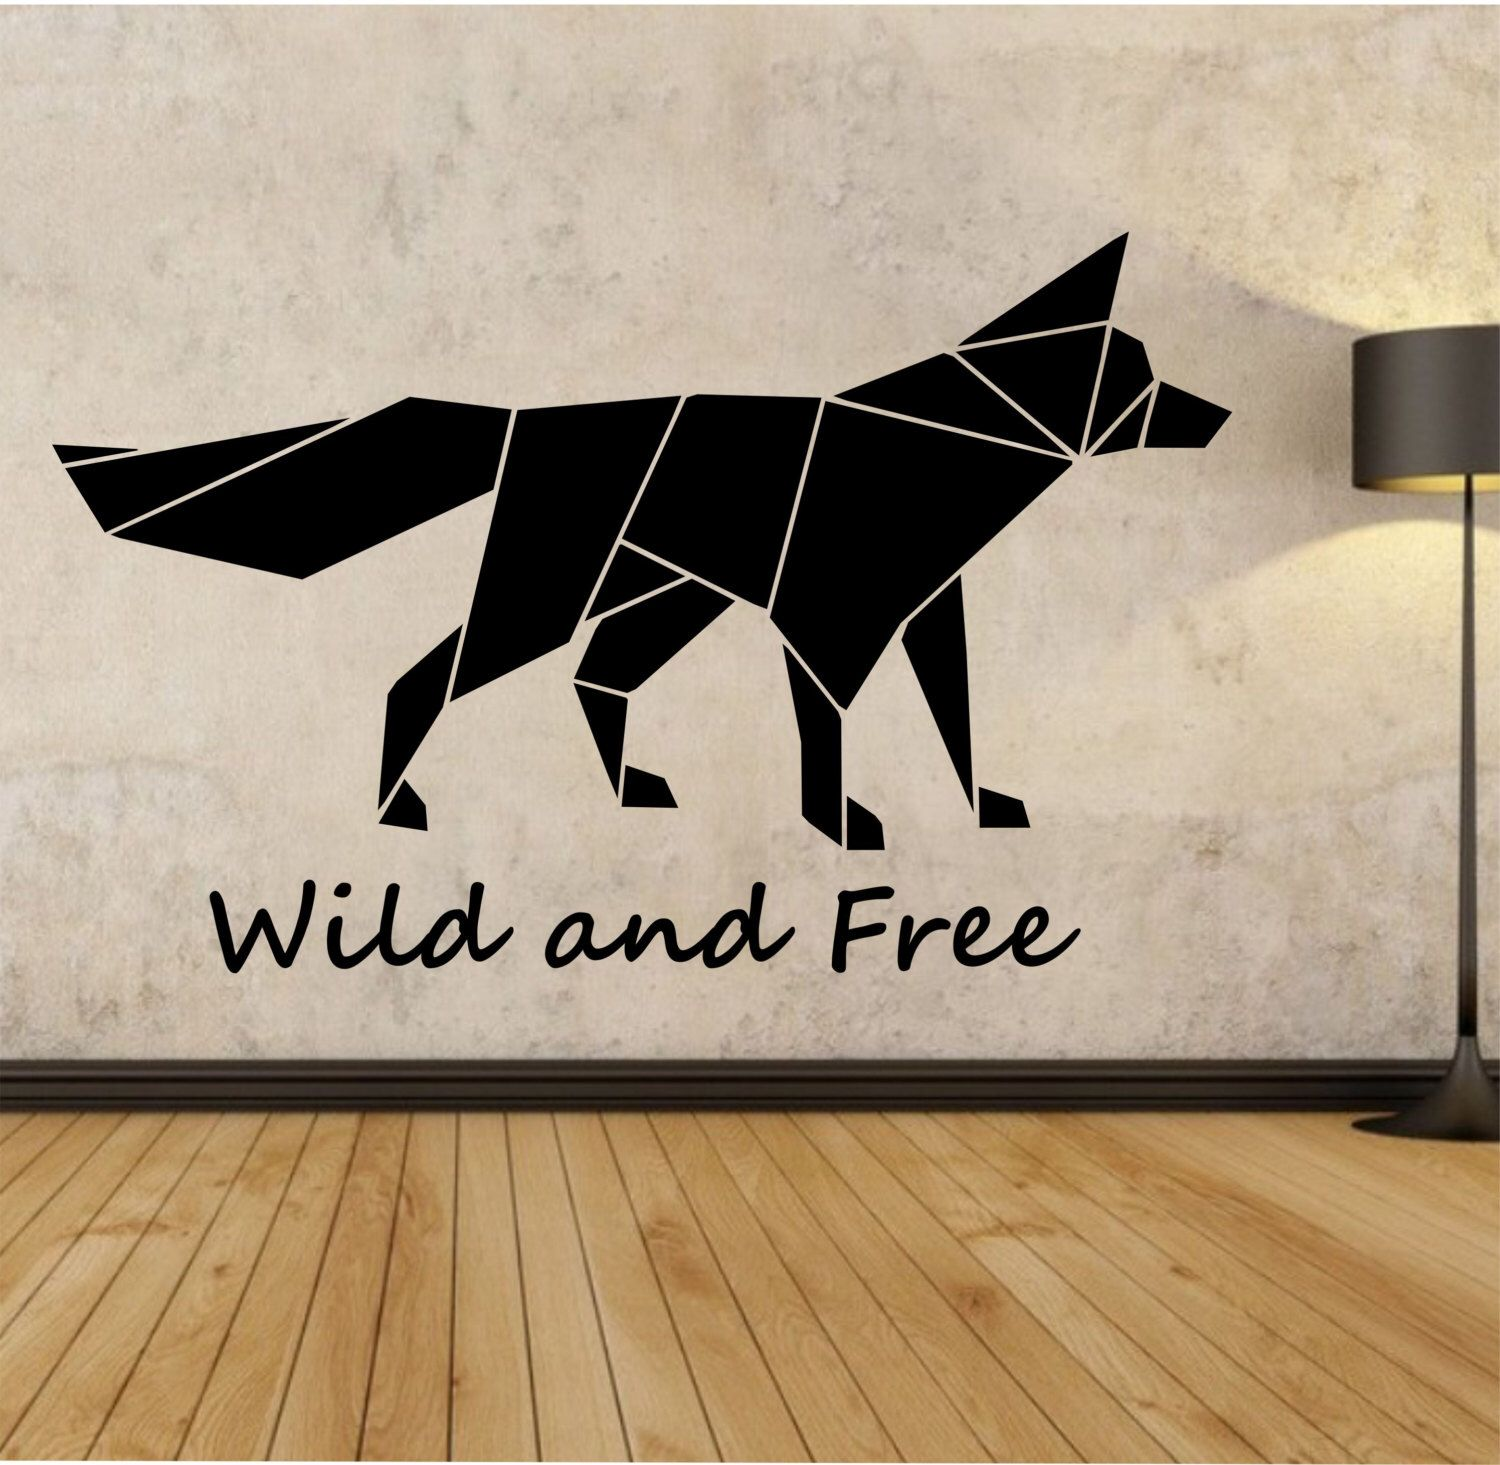 Origami fox wall decal wild and free quote sticker art decor origami fox wall decal wild and free quote sticker art decor bedroom design mural animals living amipublicfo Gallery